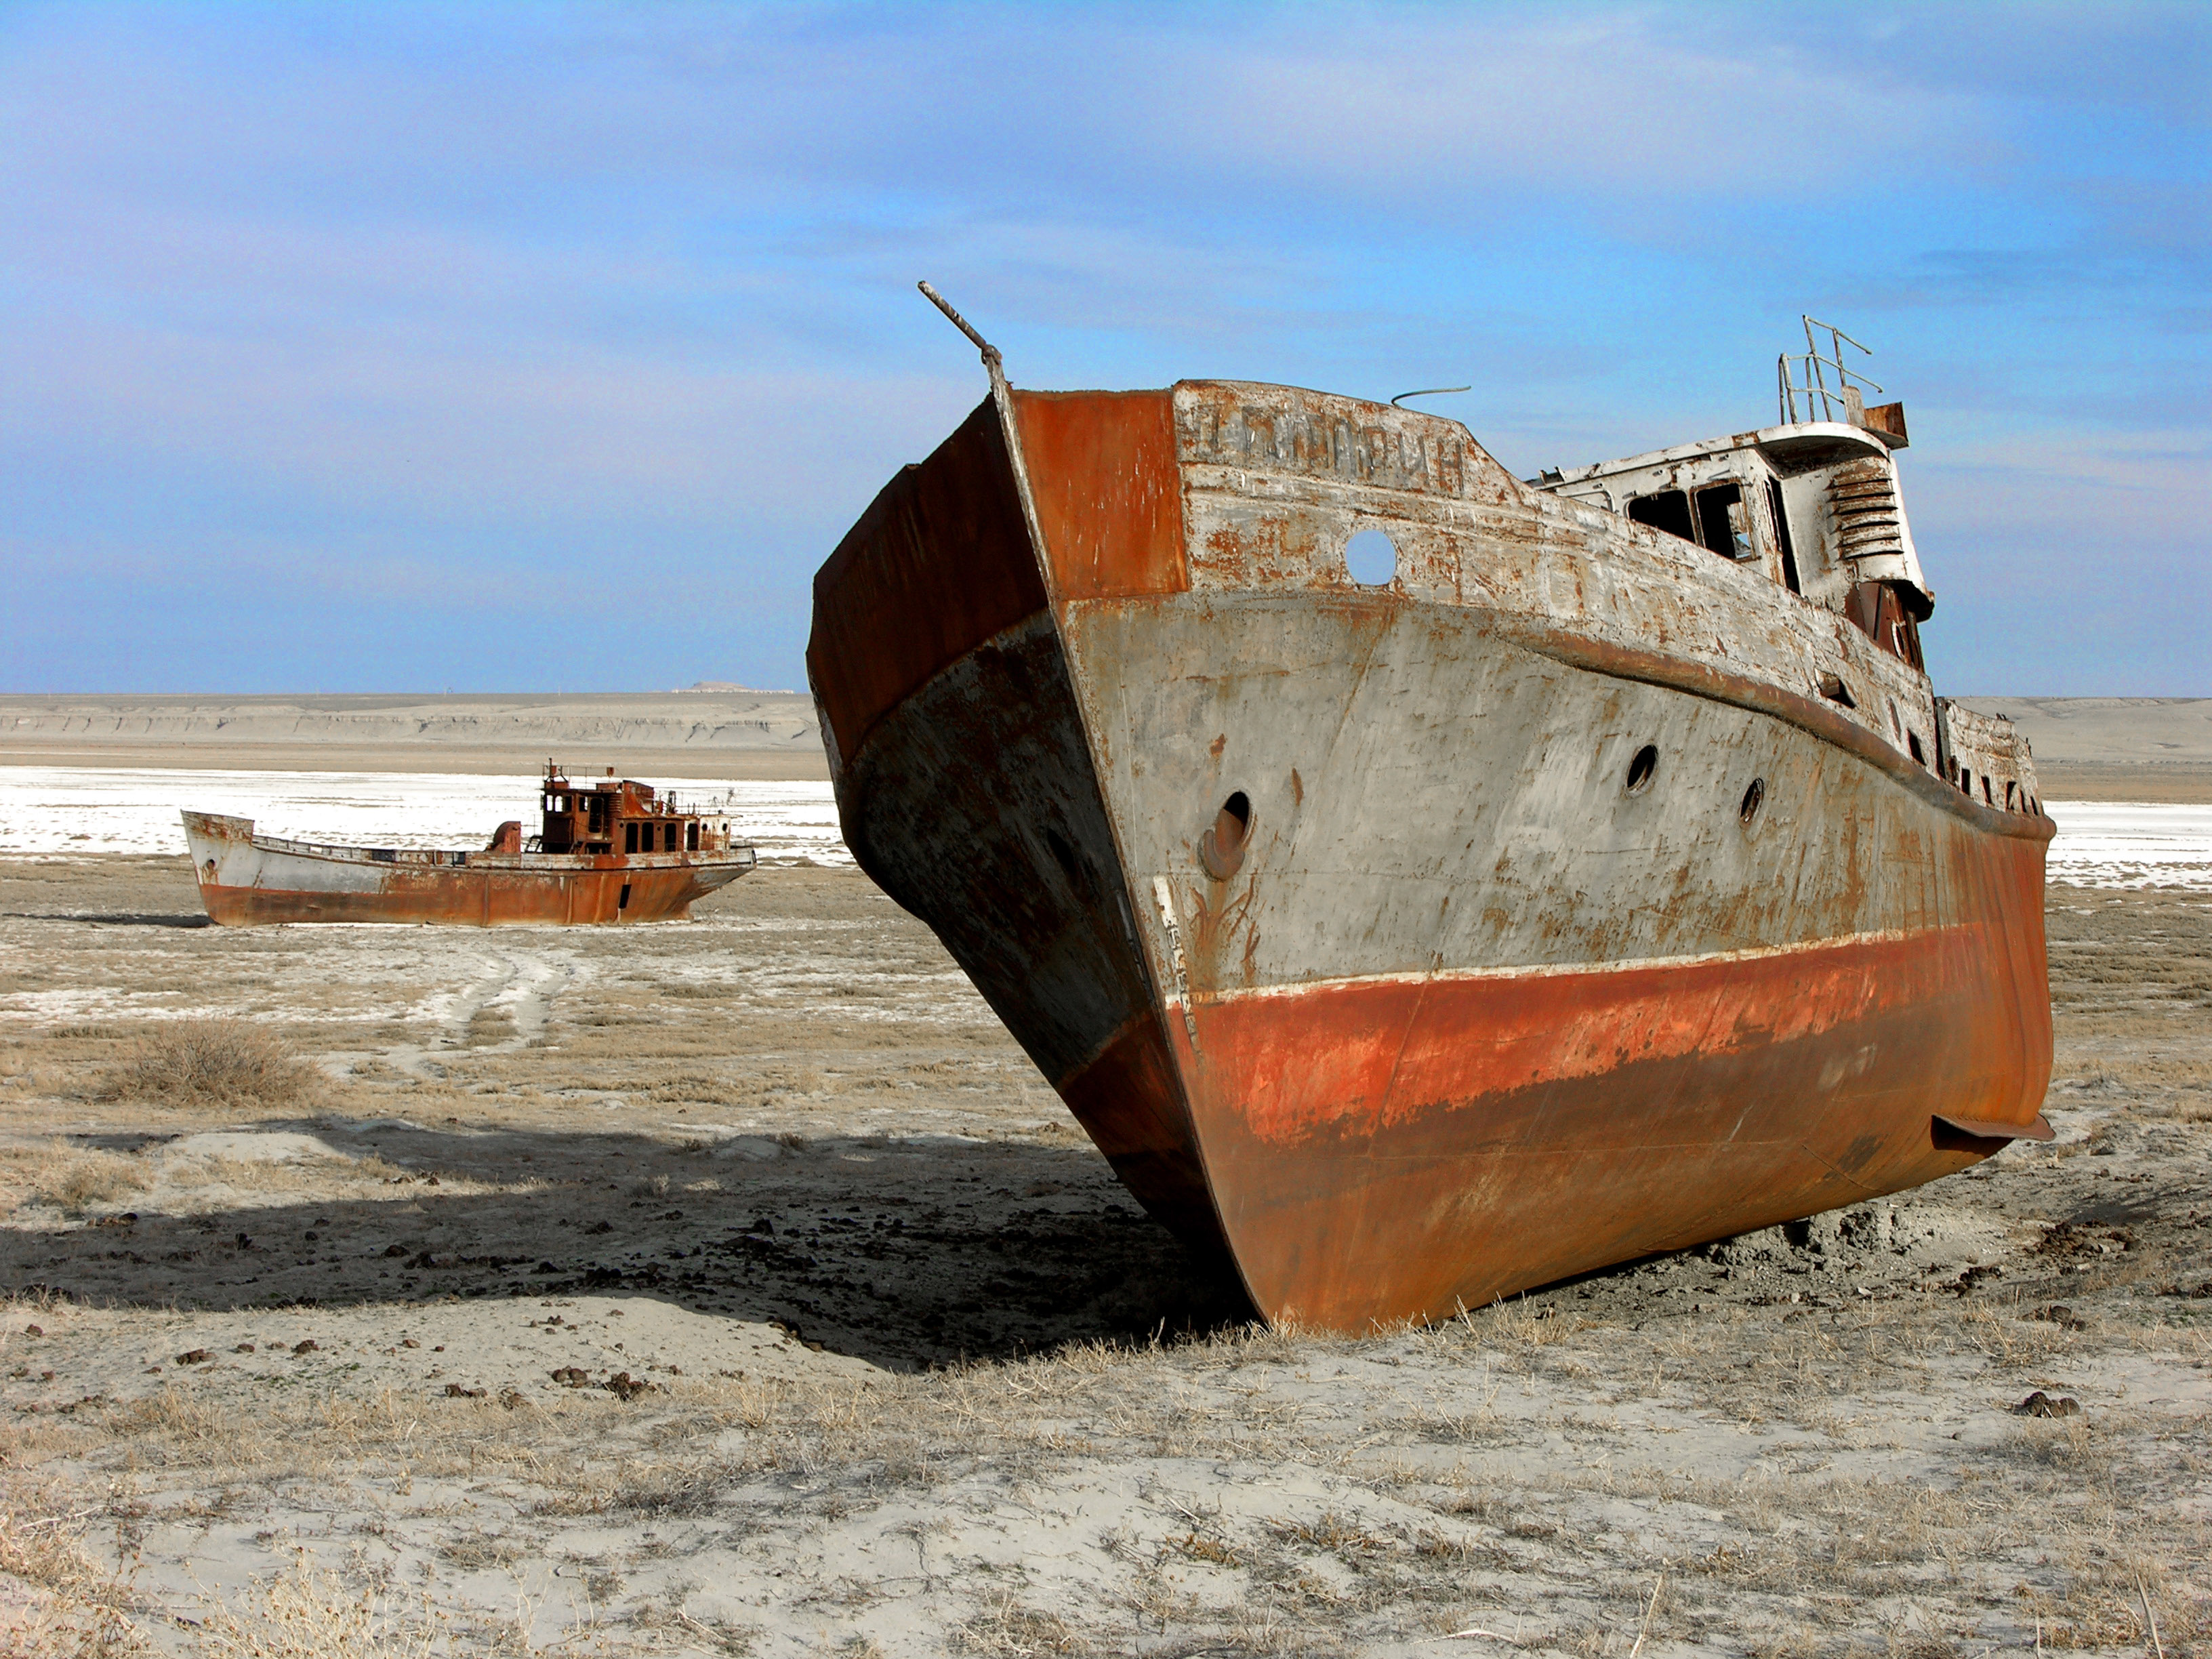 File:The Aral sea is d...